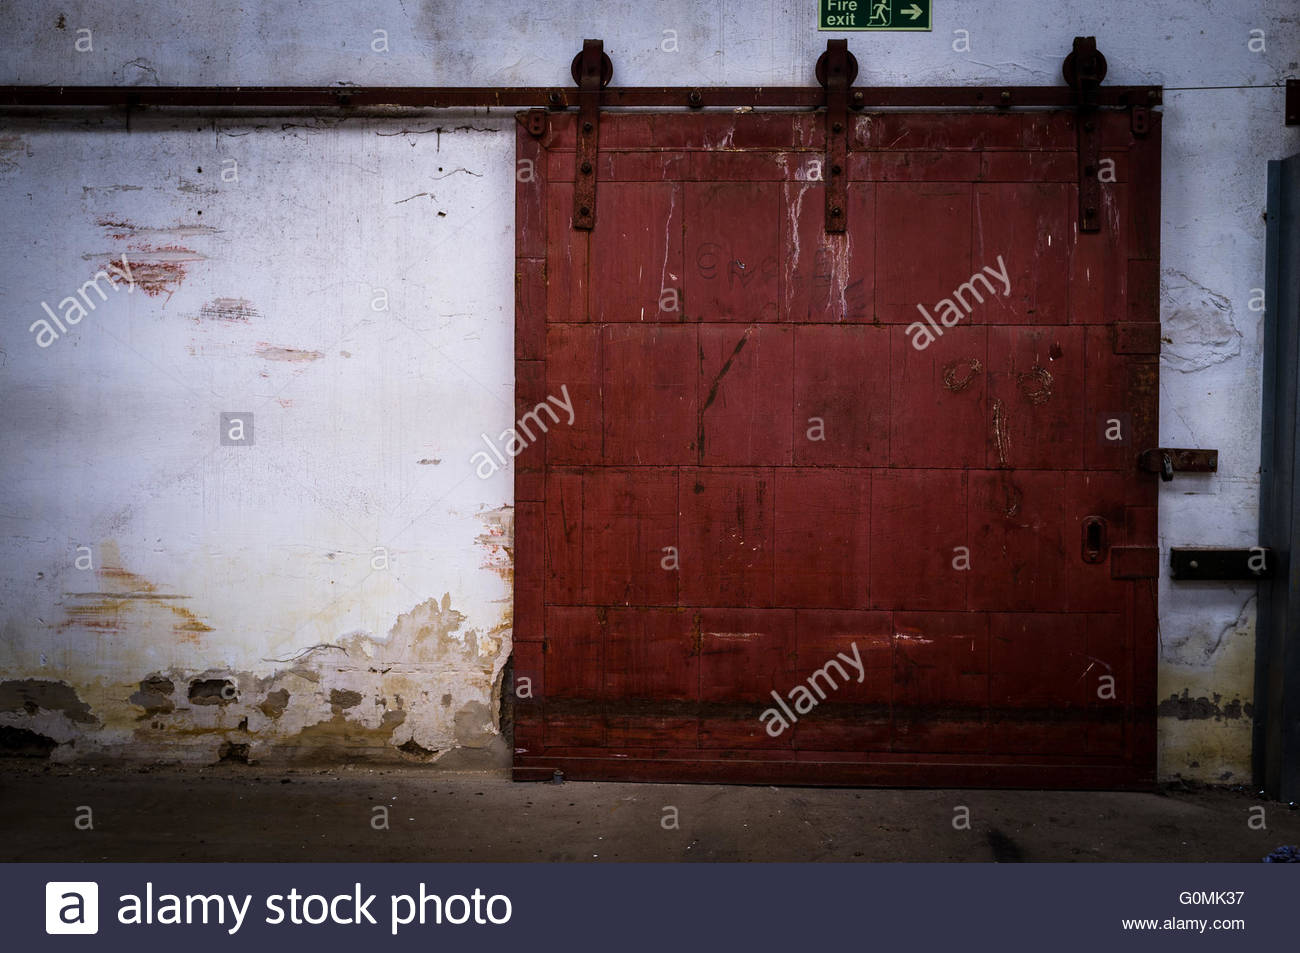 ... Heavy Metal Sliding Door In An Old, Disused Factory   Stock Photo